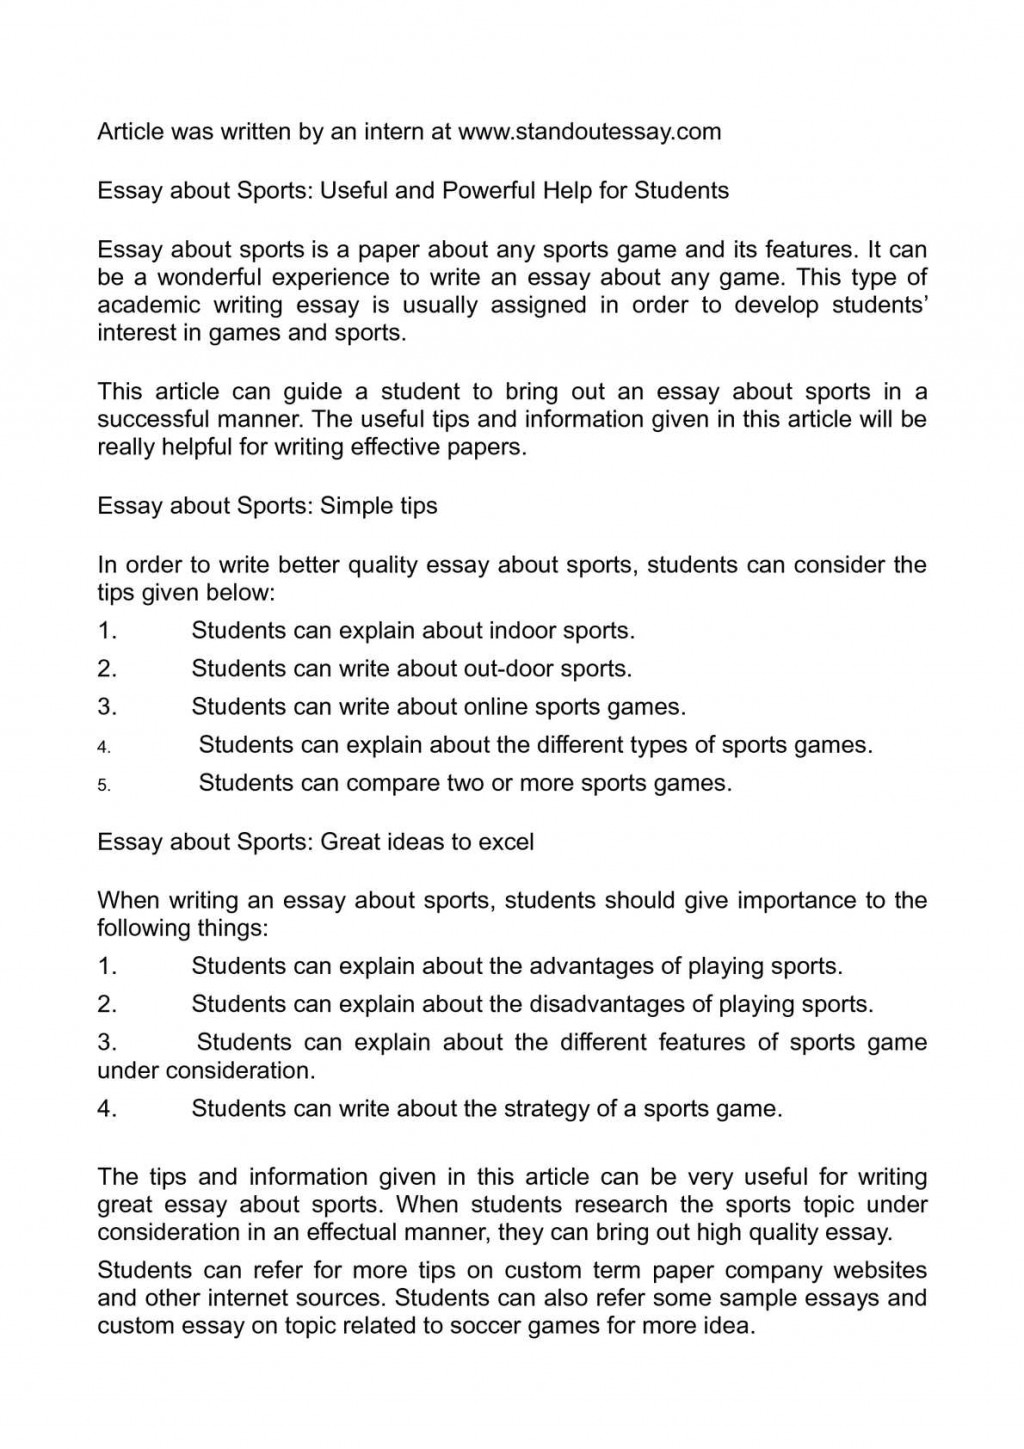 003 Essay Example About Sports Awesome Sportsmanship Personal Spirit Of Large